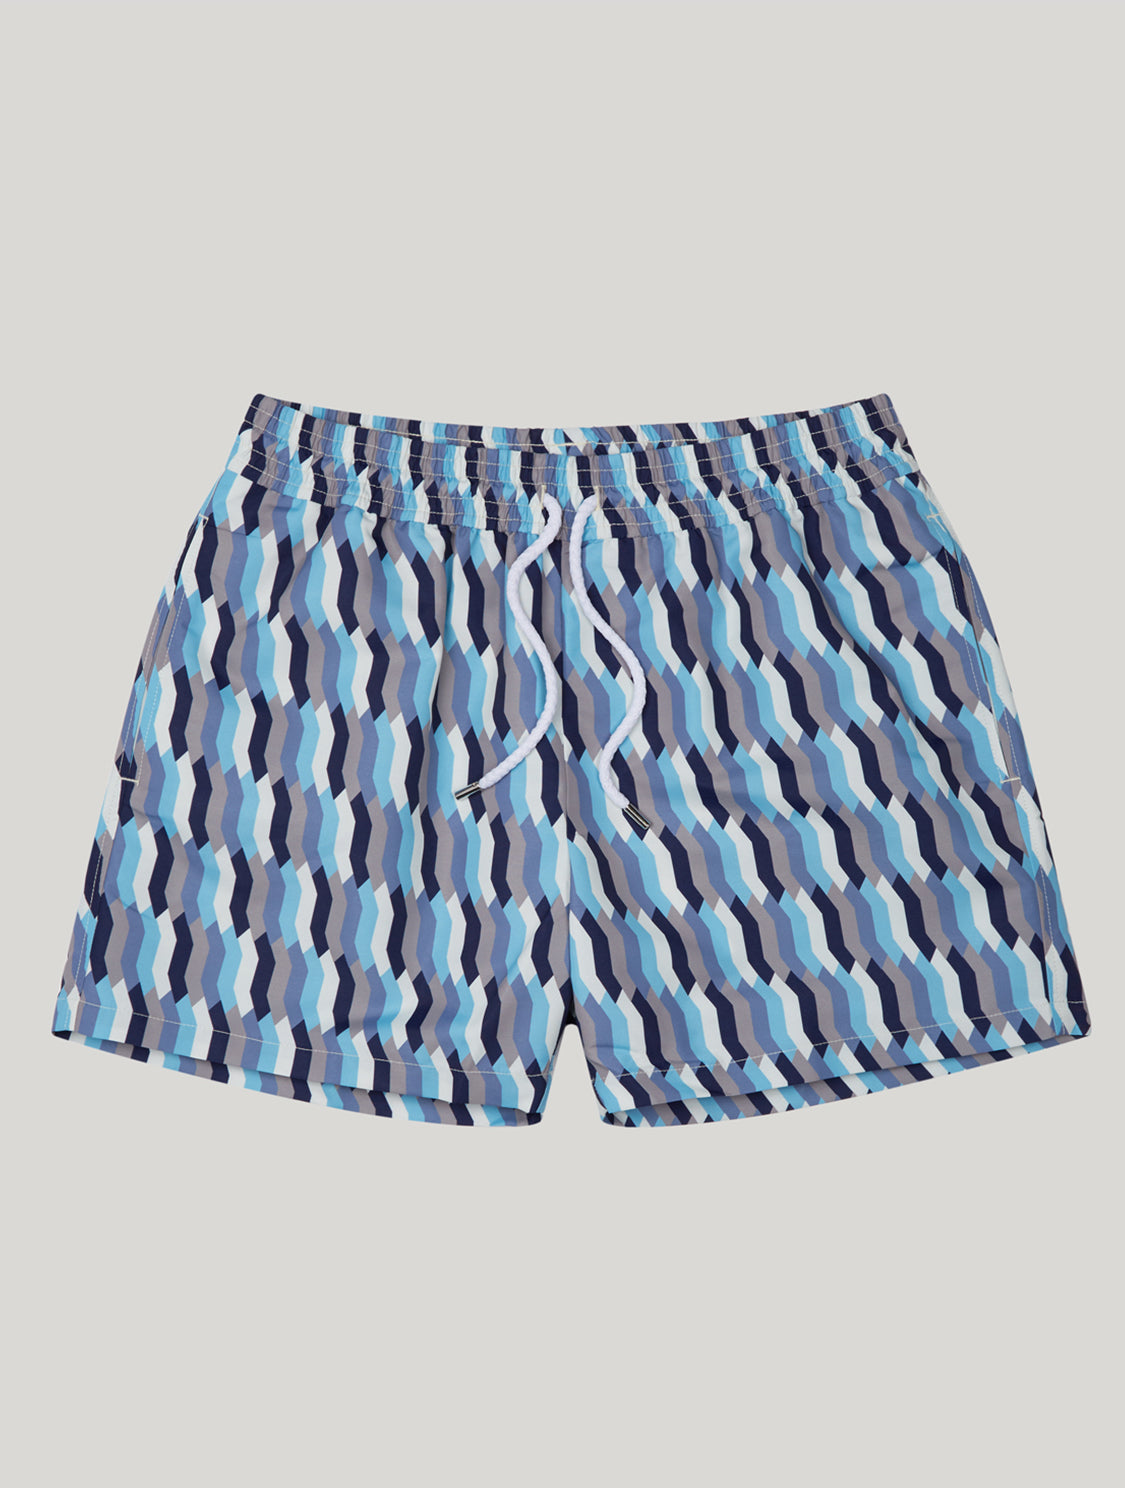 Mosaique Sports Shorts